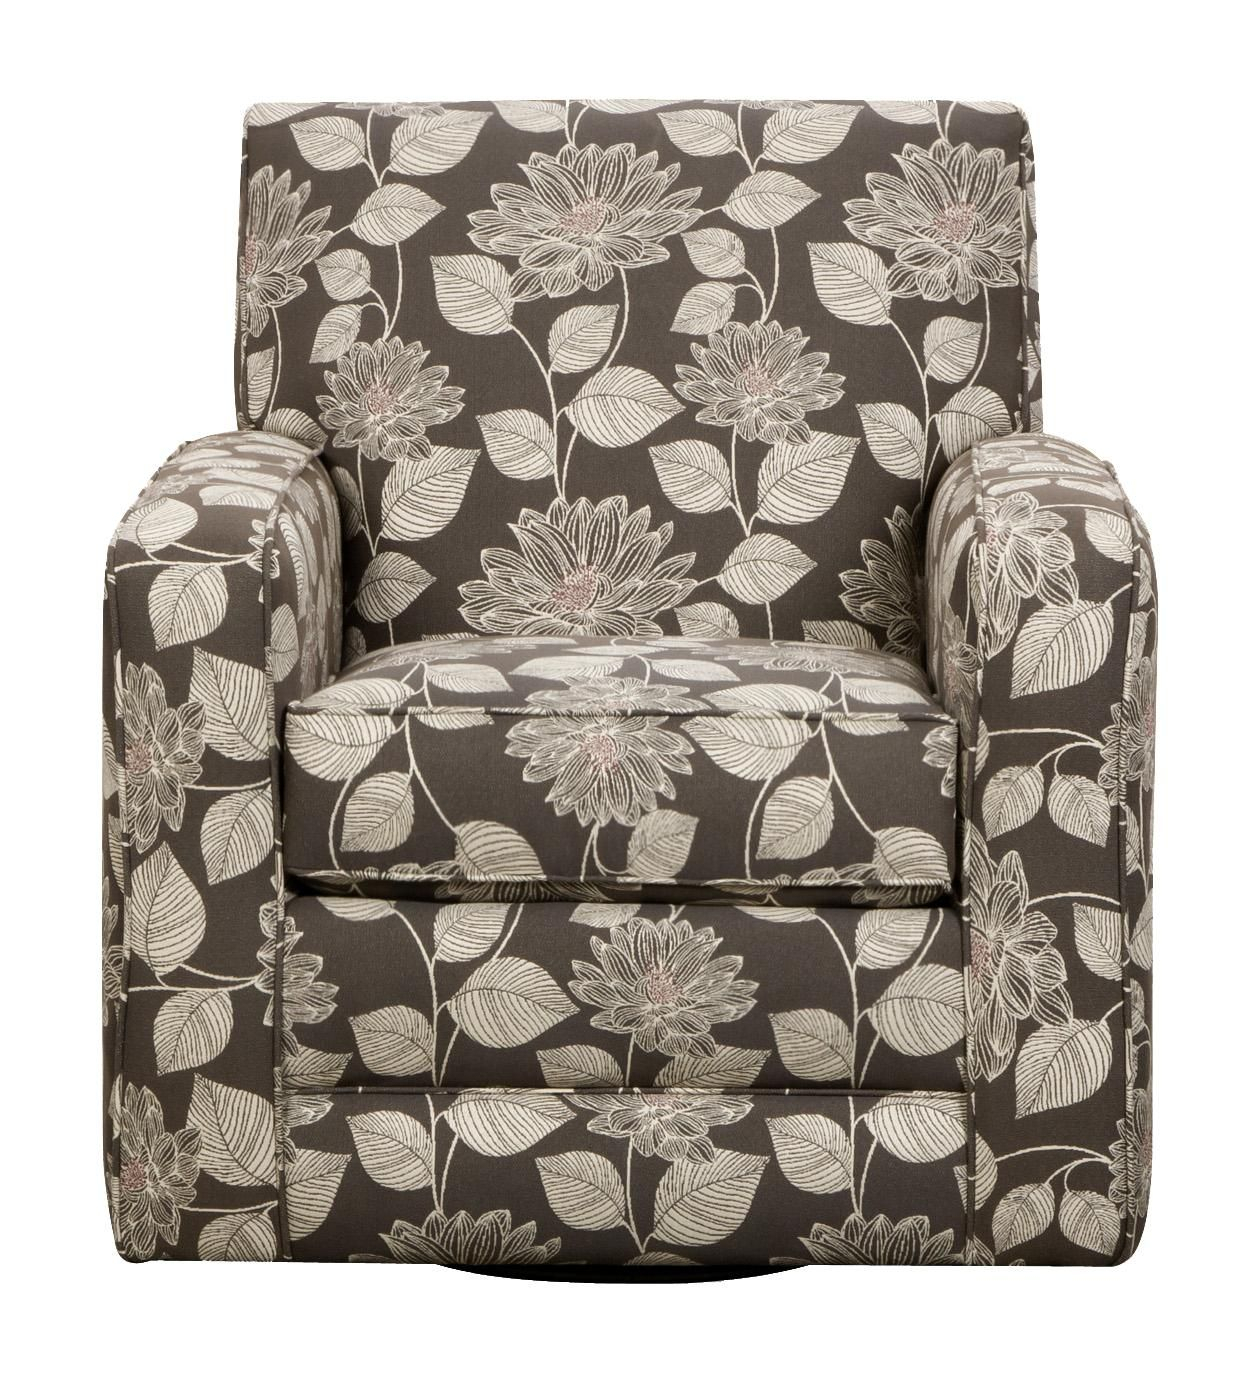 29A0 Swivel Accent Chaircorinthian | Ideas For Eddie Living Room For Harbor Grey Swivel Accent Chairs (Image 1 of 25)